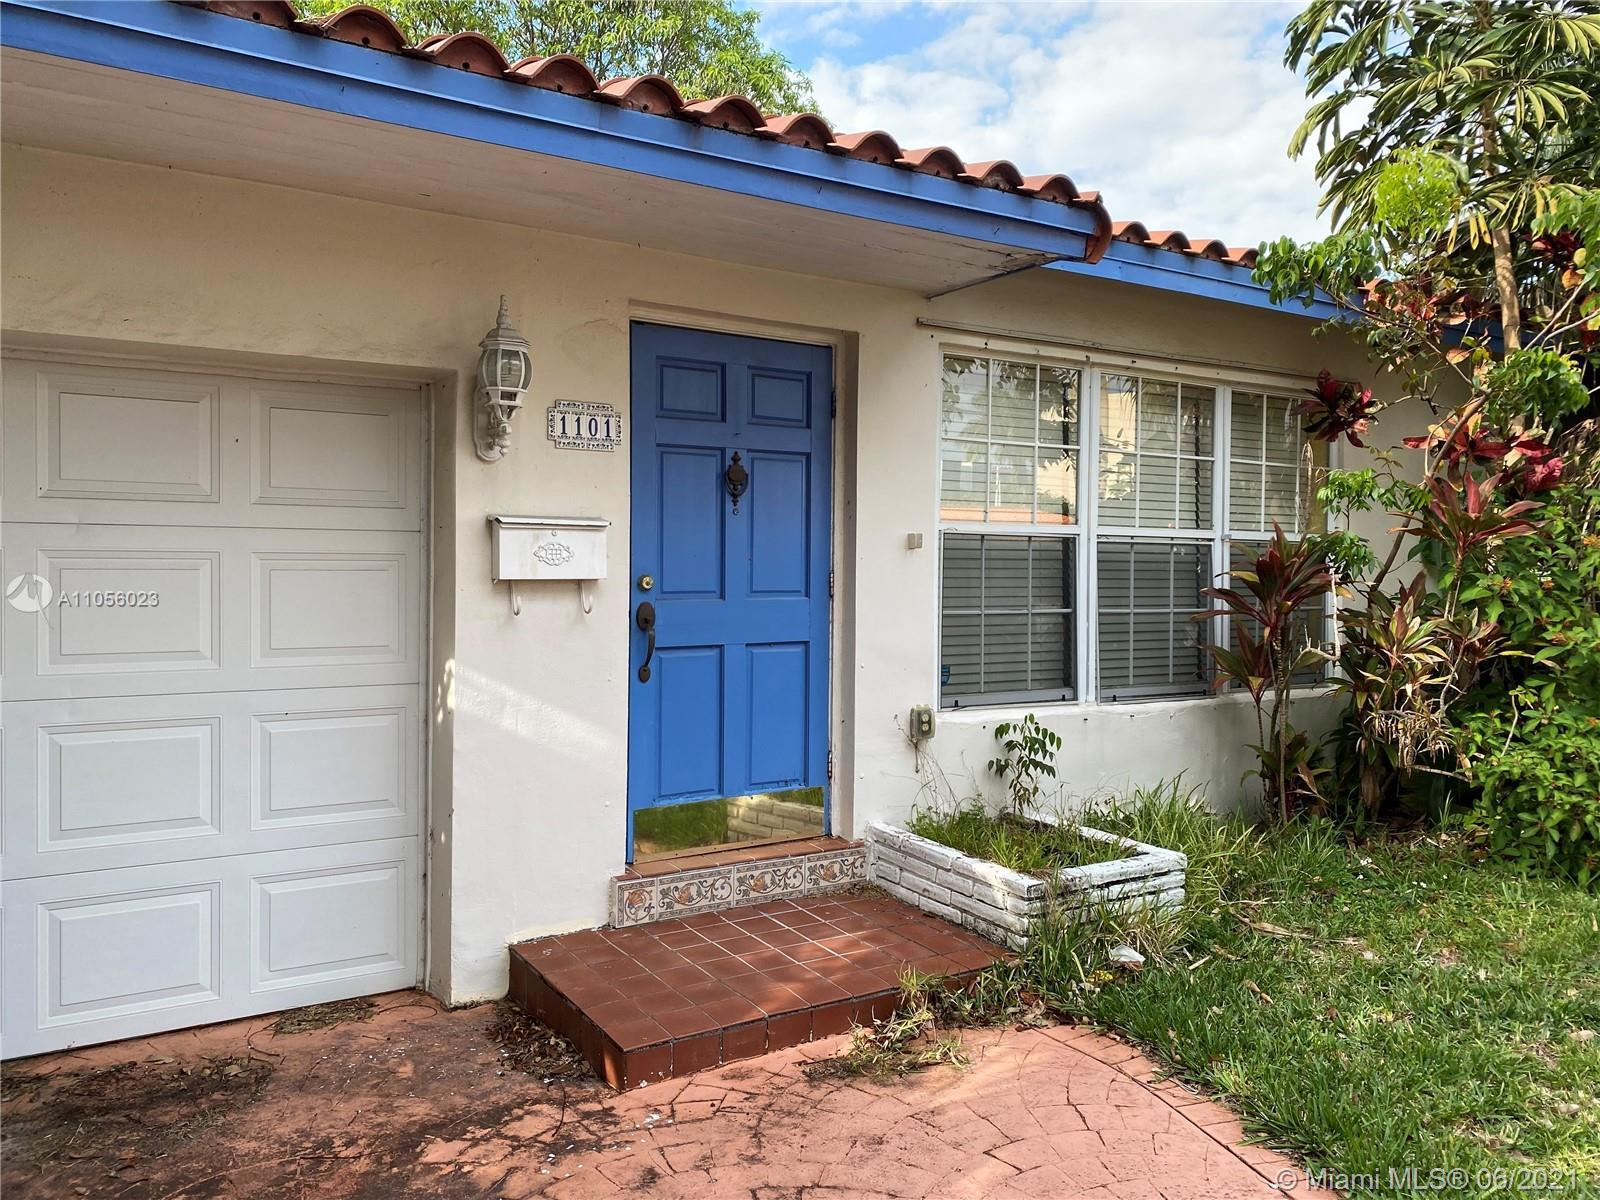 Lovely home located in Hallandale Beach needs some TLC. Main home is 2 bed & 2 bath, laundry room, a